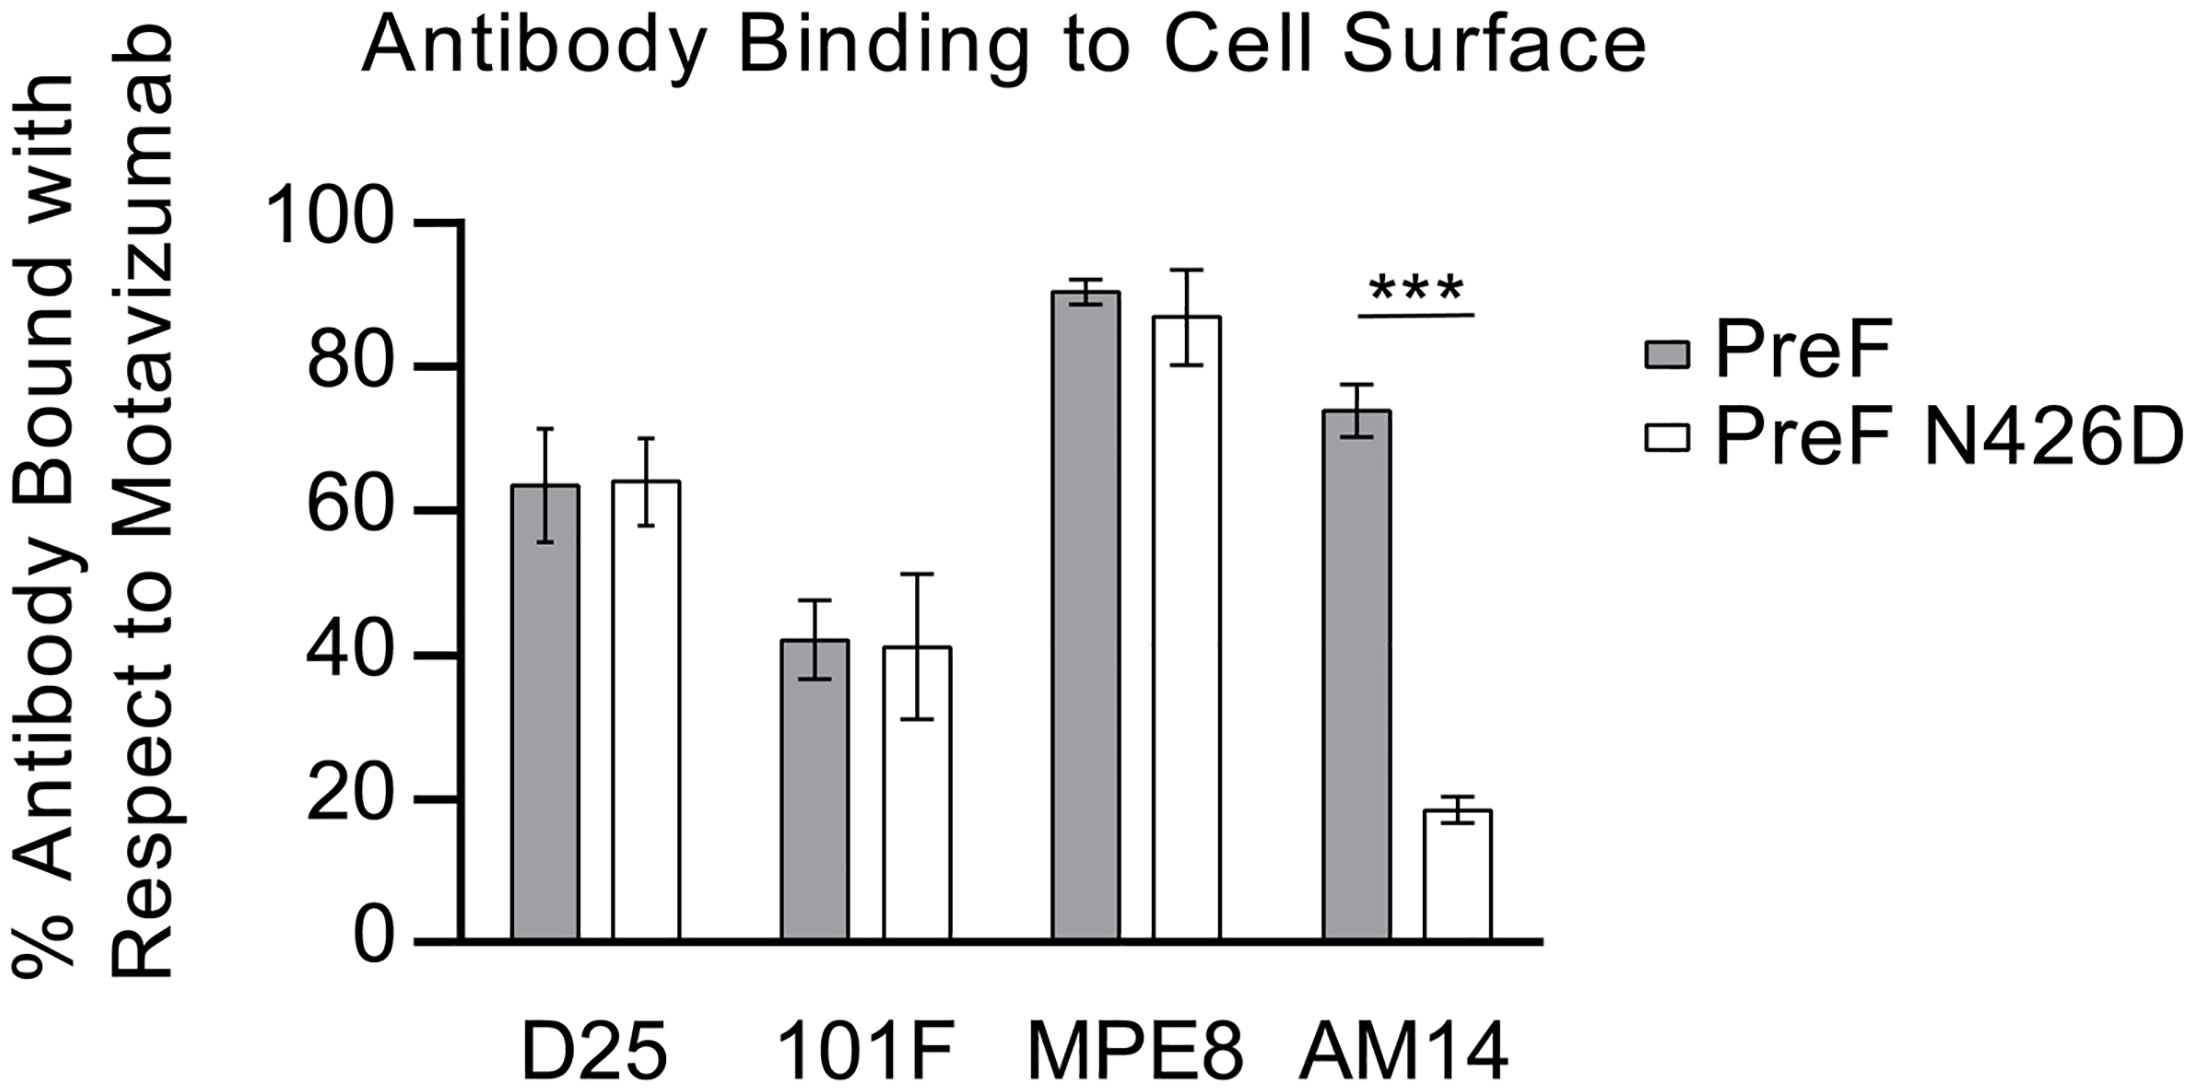 N426D disrupts binding of AM14 to prefusion F.